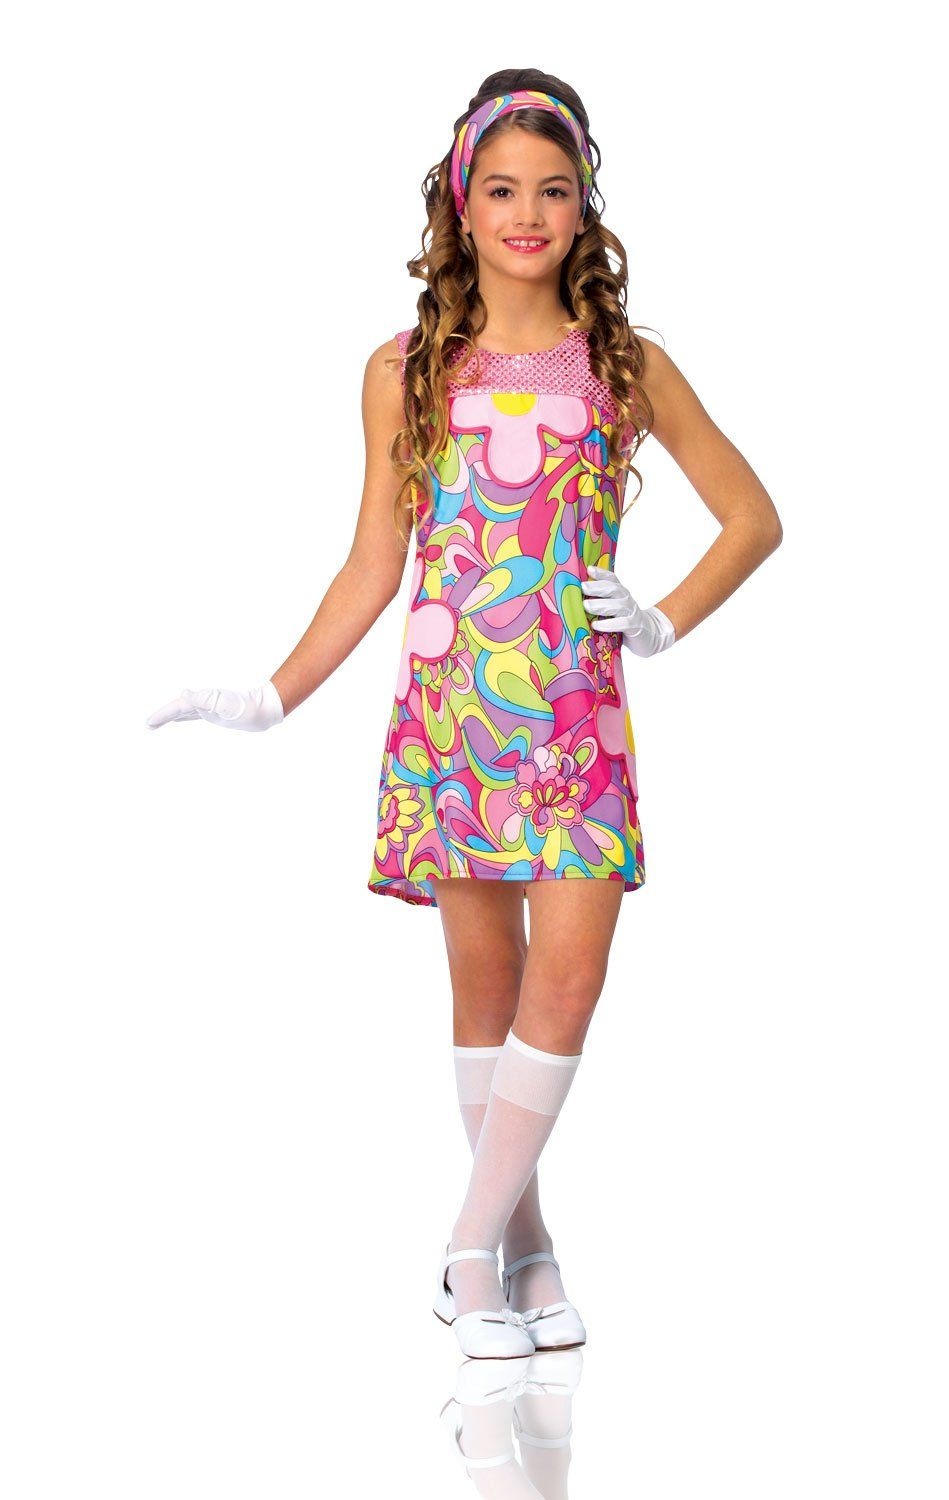 f590ec5ae8 Kids Girls Costume 60s 70s Groovy Girl Dress Outfit M Girls Medium US size  810 -- Details can be discovered by clicking the picture.